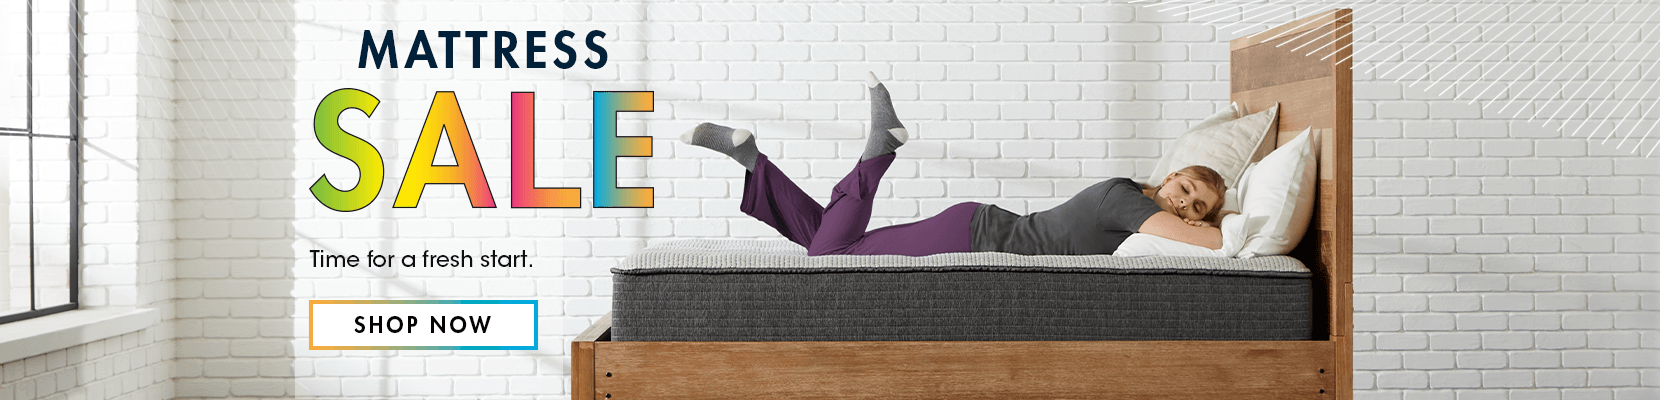 mattress sale. time for a fresh start. shop now